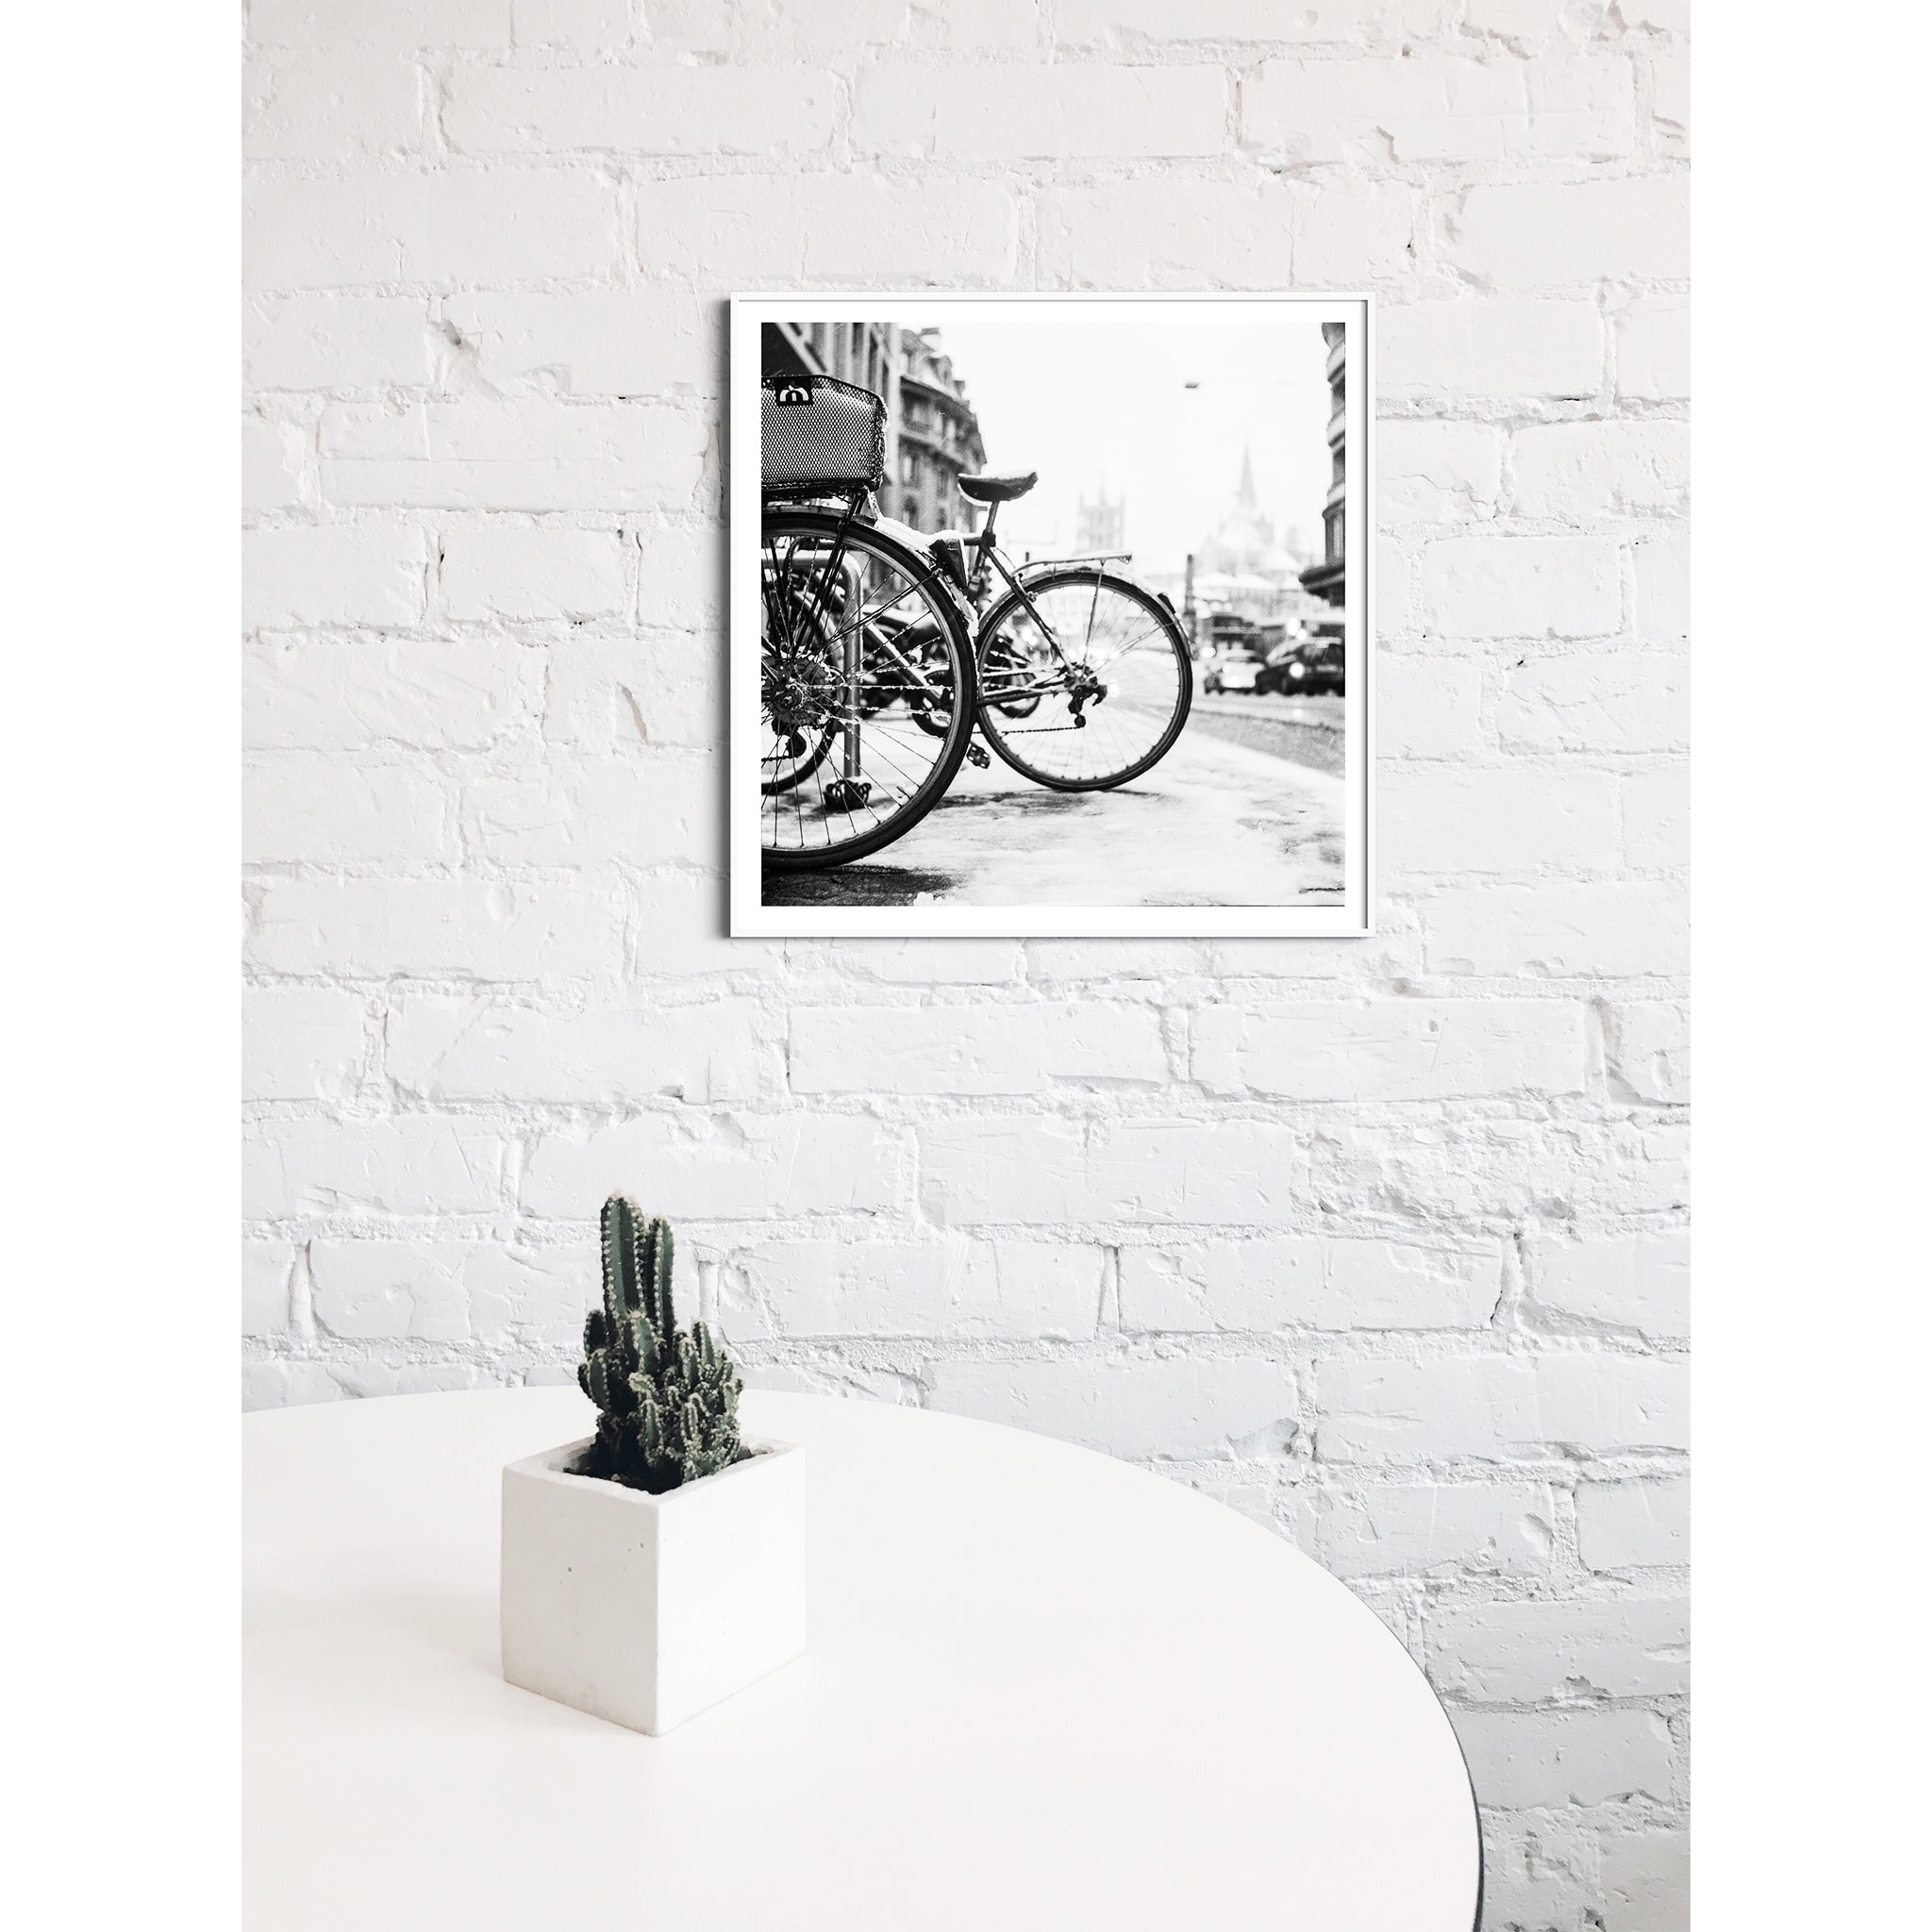 lausanne bicycles in snow print in white frame with border on the wall